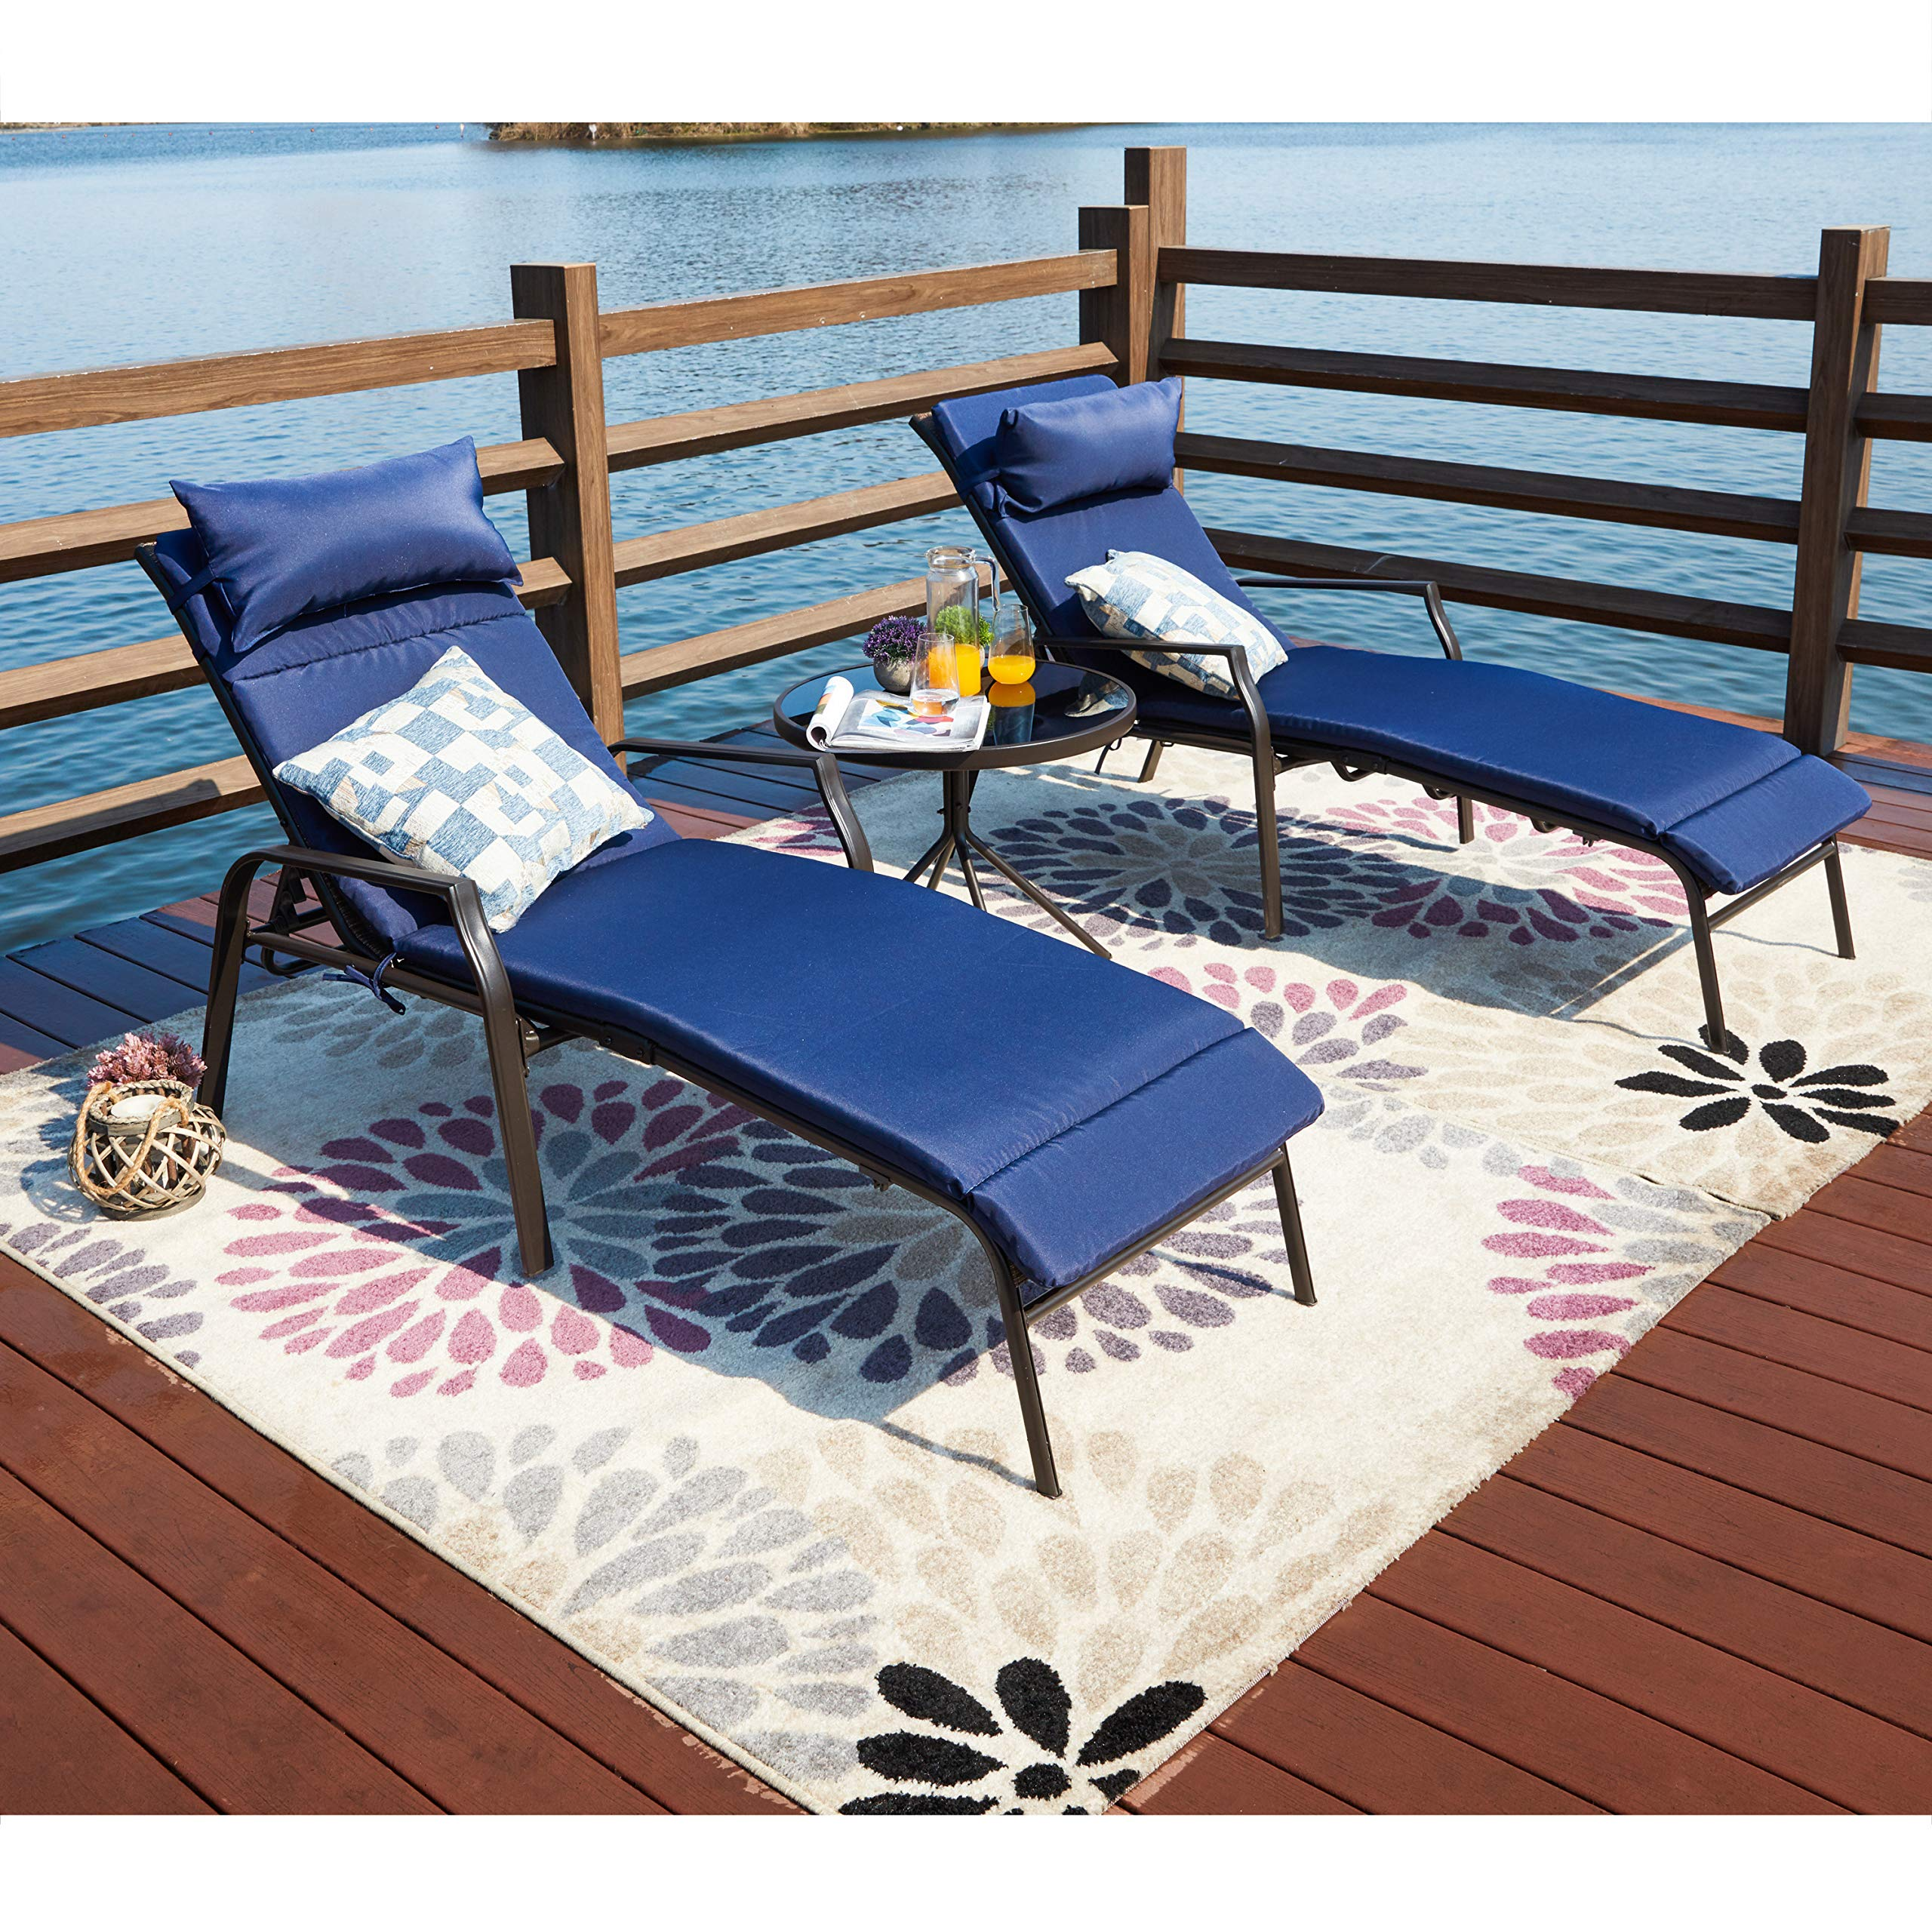 LOKATSE HOME 3 Pieces Outdoor Patio Chaise Lounges Chairs Set Adjustable with Folding Table, Dark Blue Cushions by LOKATSE HOME